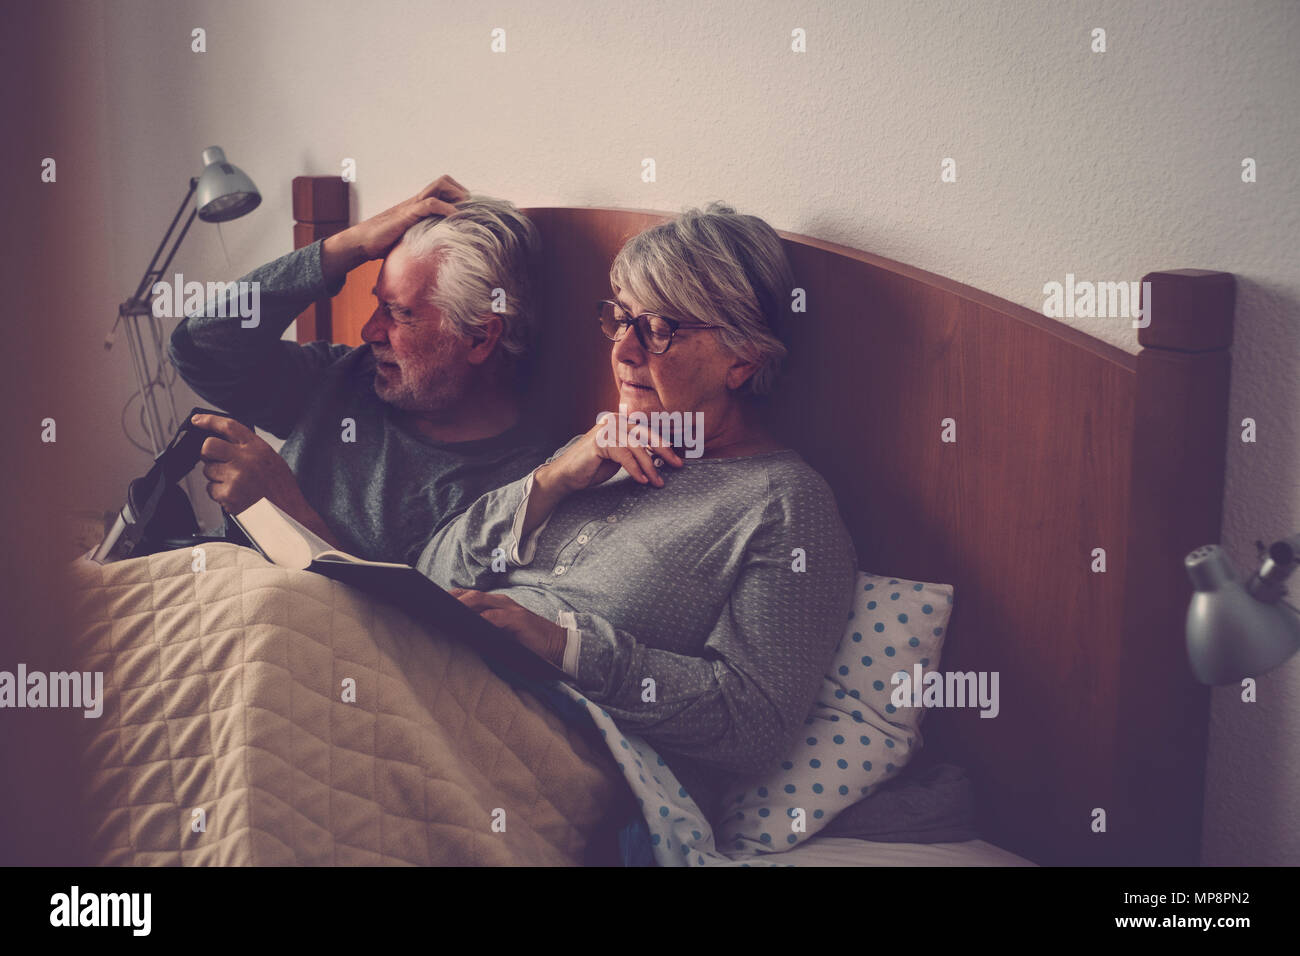 caucasian senior adult couple stay and rest on the bed. the wman read a book the man play with goggled headset technology. beautiful model and light f Stock Photo